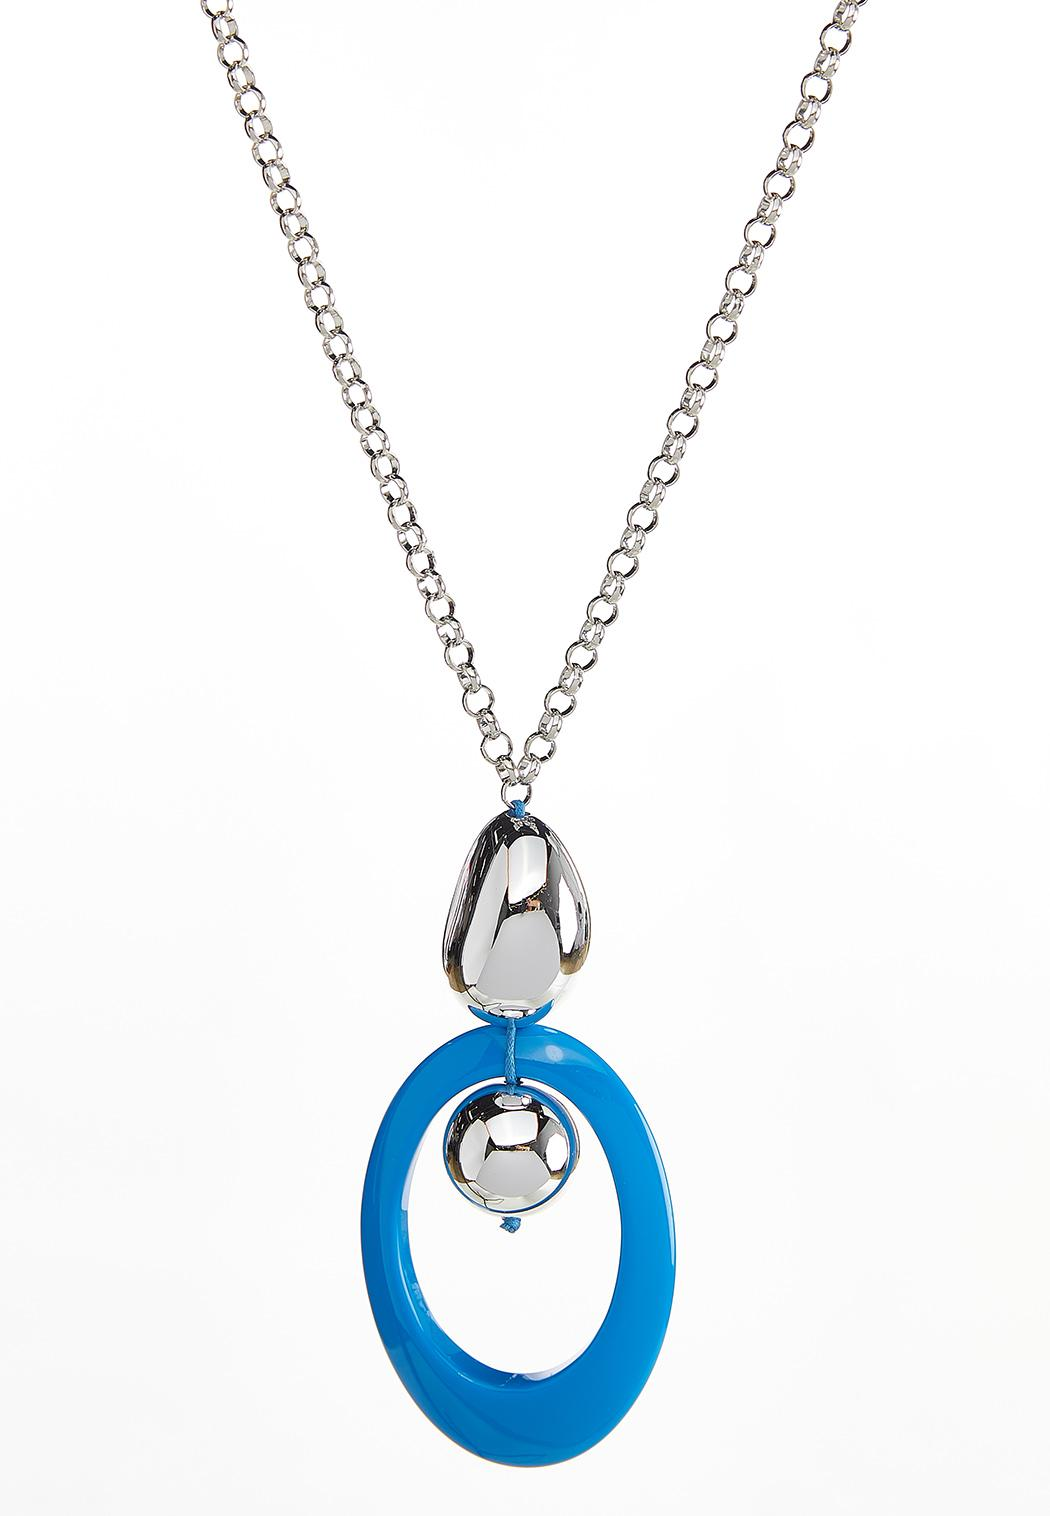 Beaded Oval Pendant Necklace